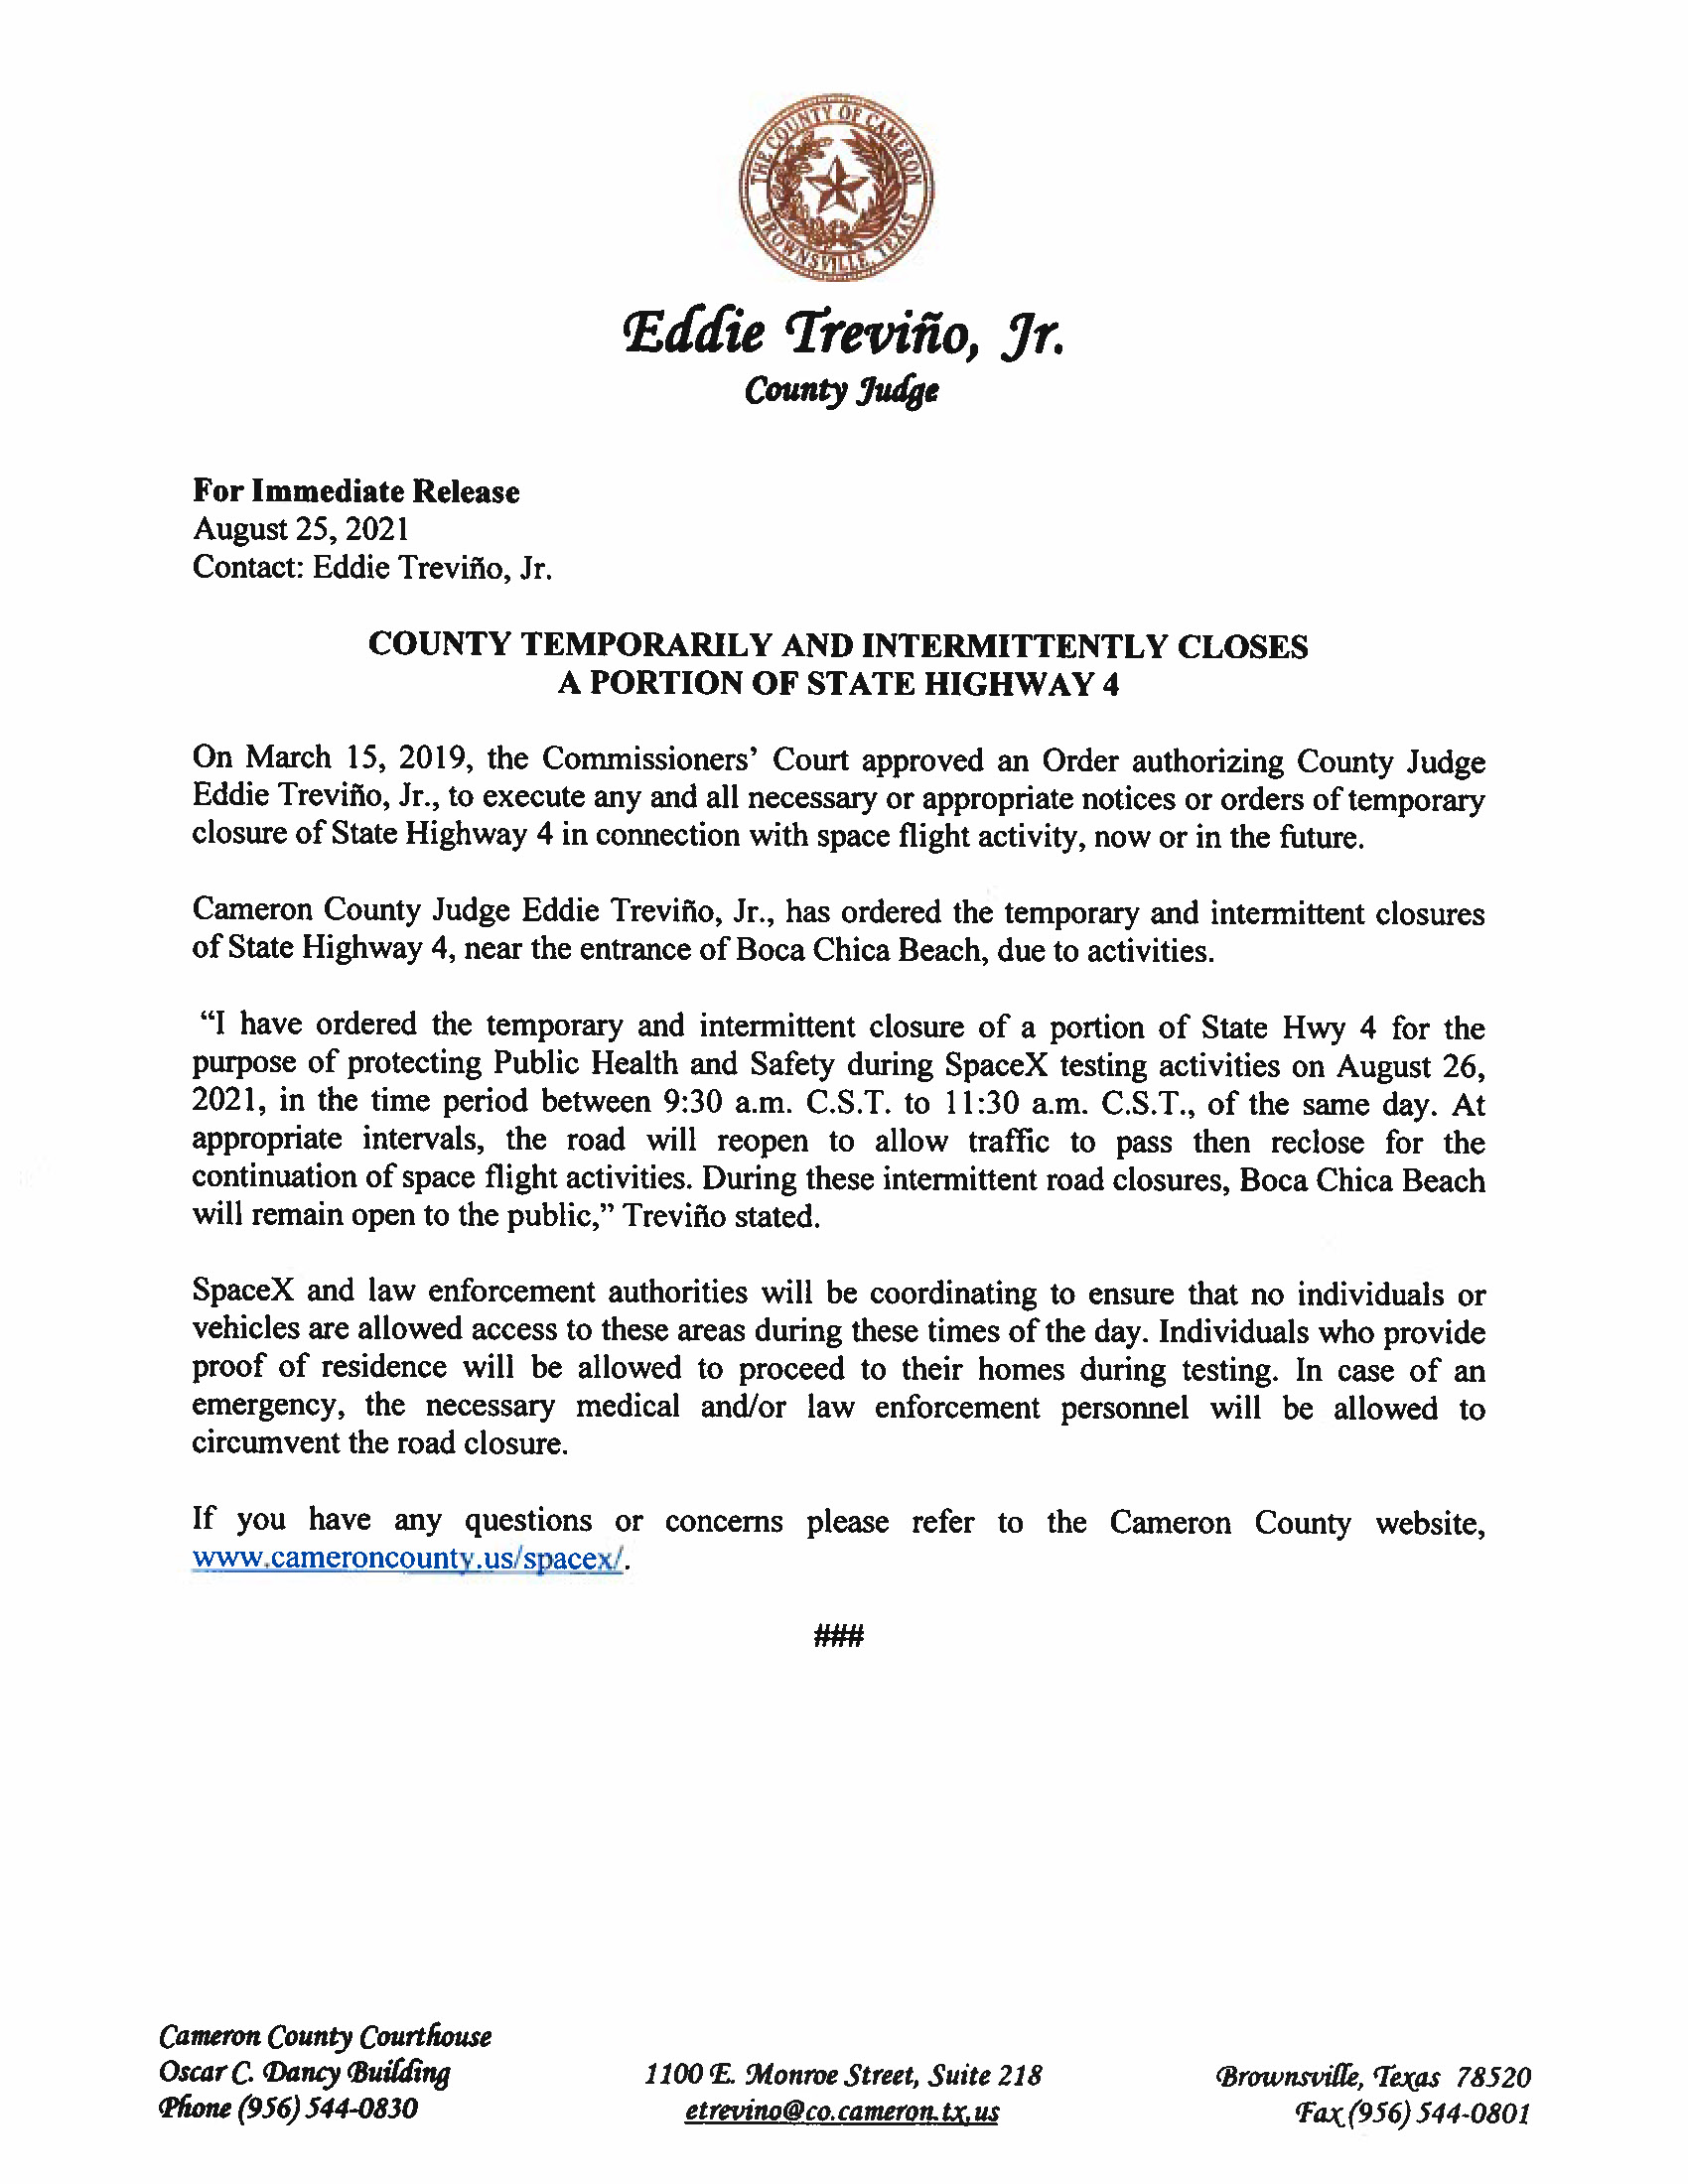 Press Release In English And Spanish.08.26.21 Page 1